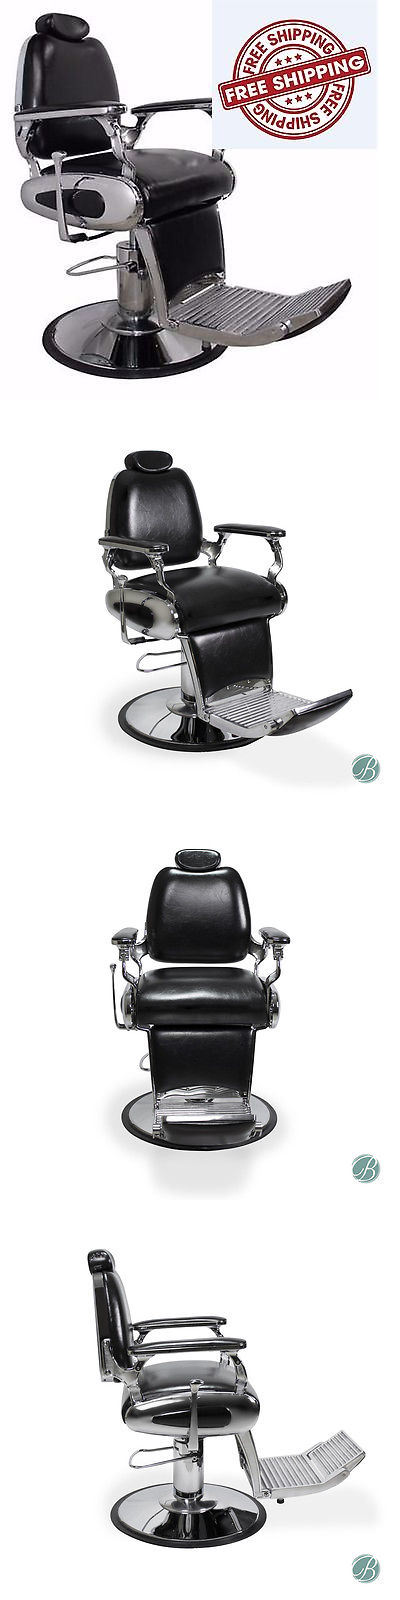 Awesome Stylist Stations And Furniture: Barber Chair Stainless Steel Fixtures Salon  Black Beauty Delano  U003e Nice Ideas